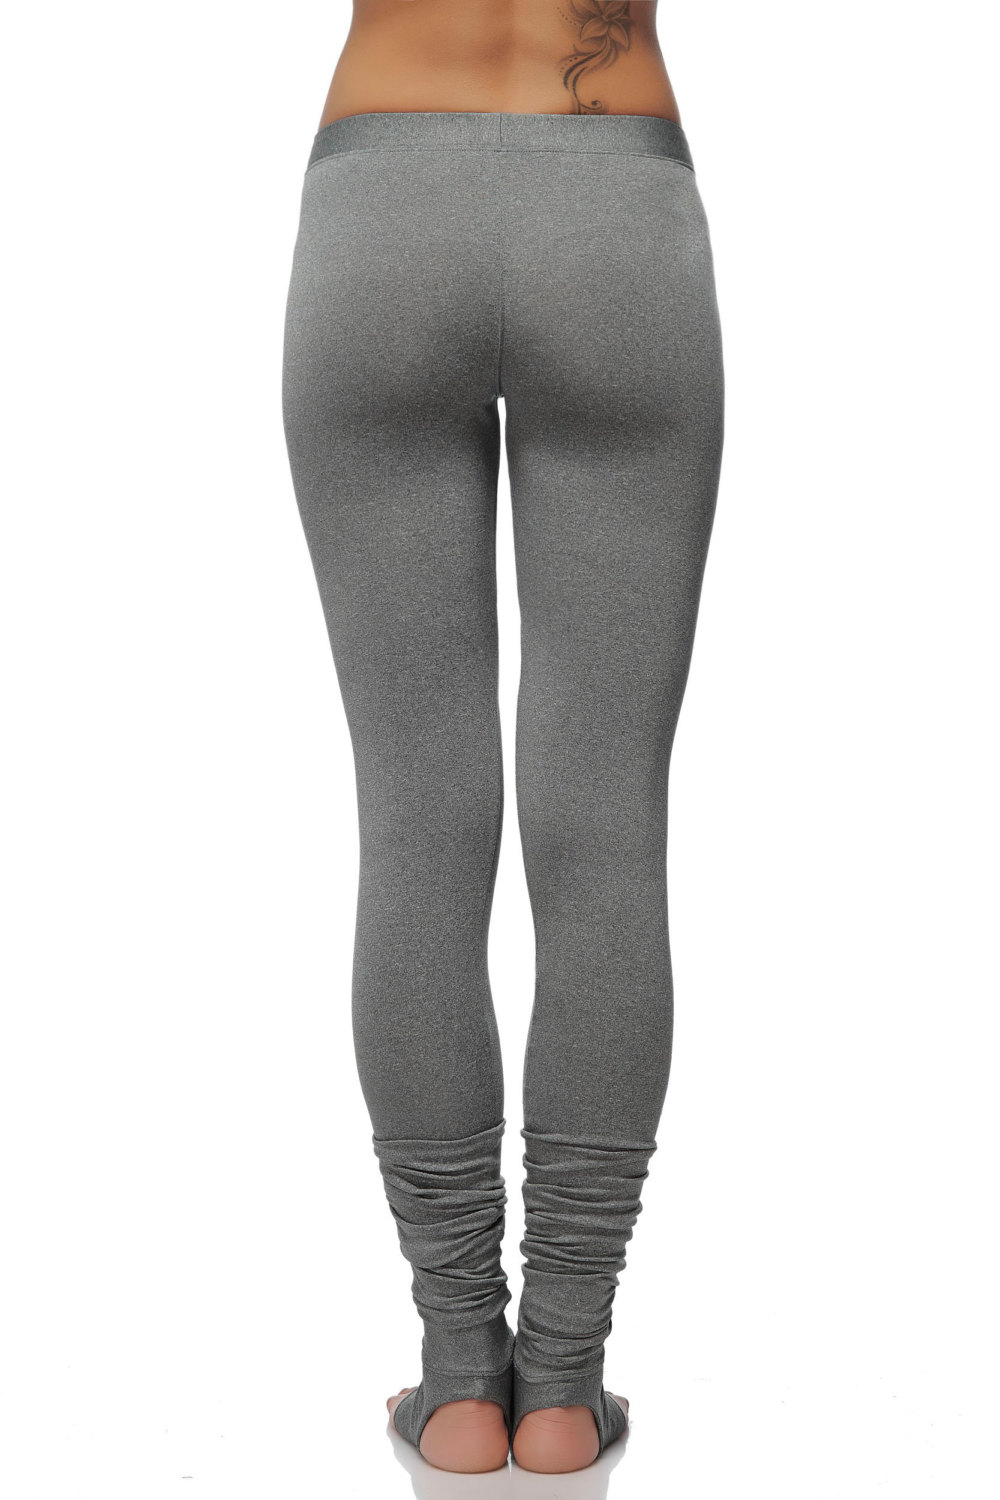 37cf1d0e2 ... Extra Long Gray Leggings - Special Dance and Yoga Leggings with Spats -  Soft Gray Women  ...